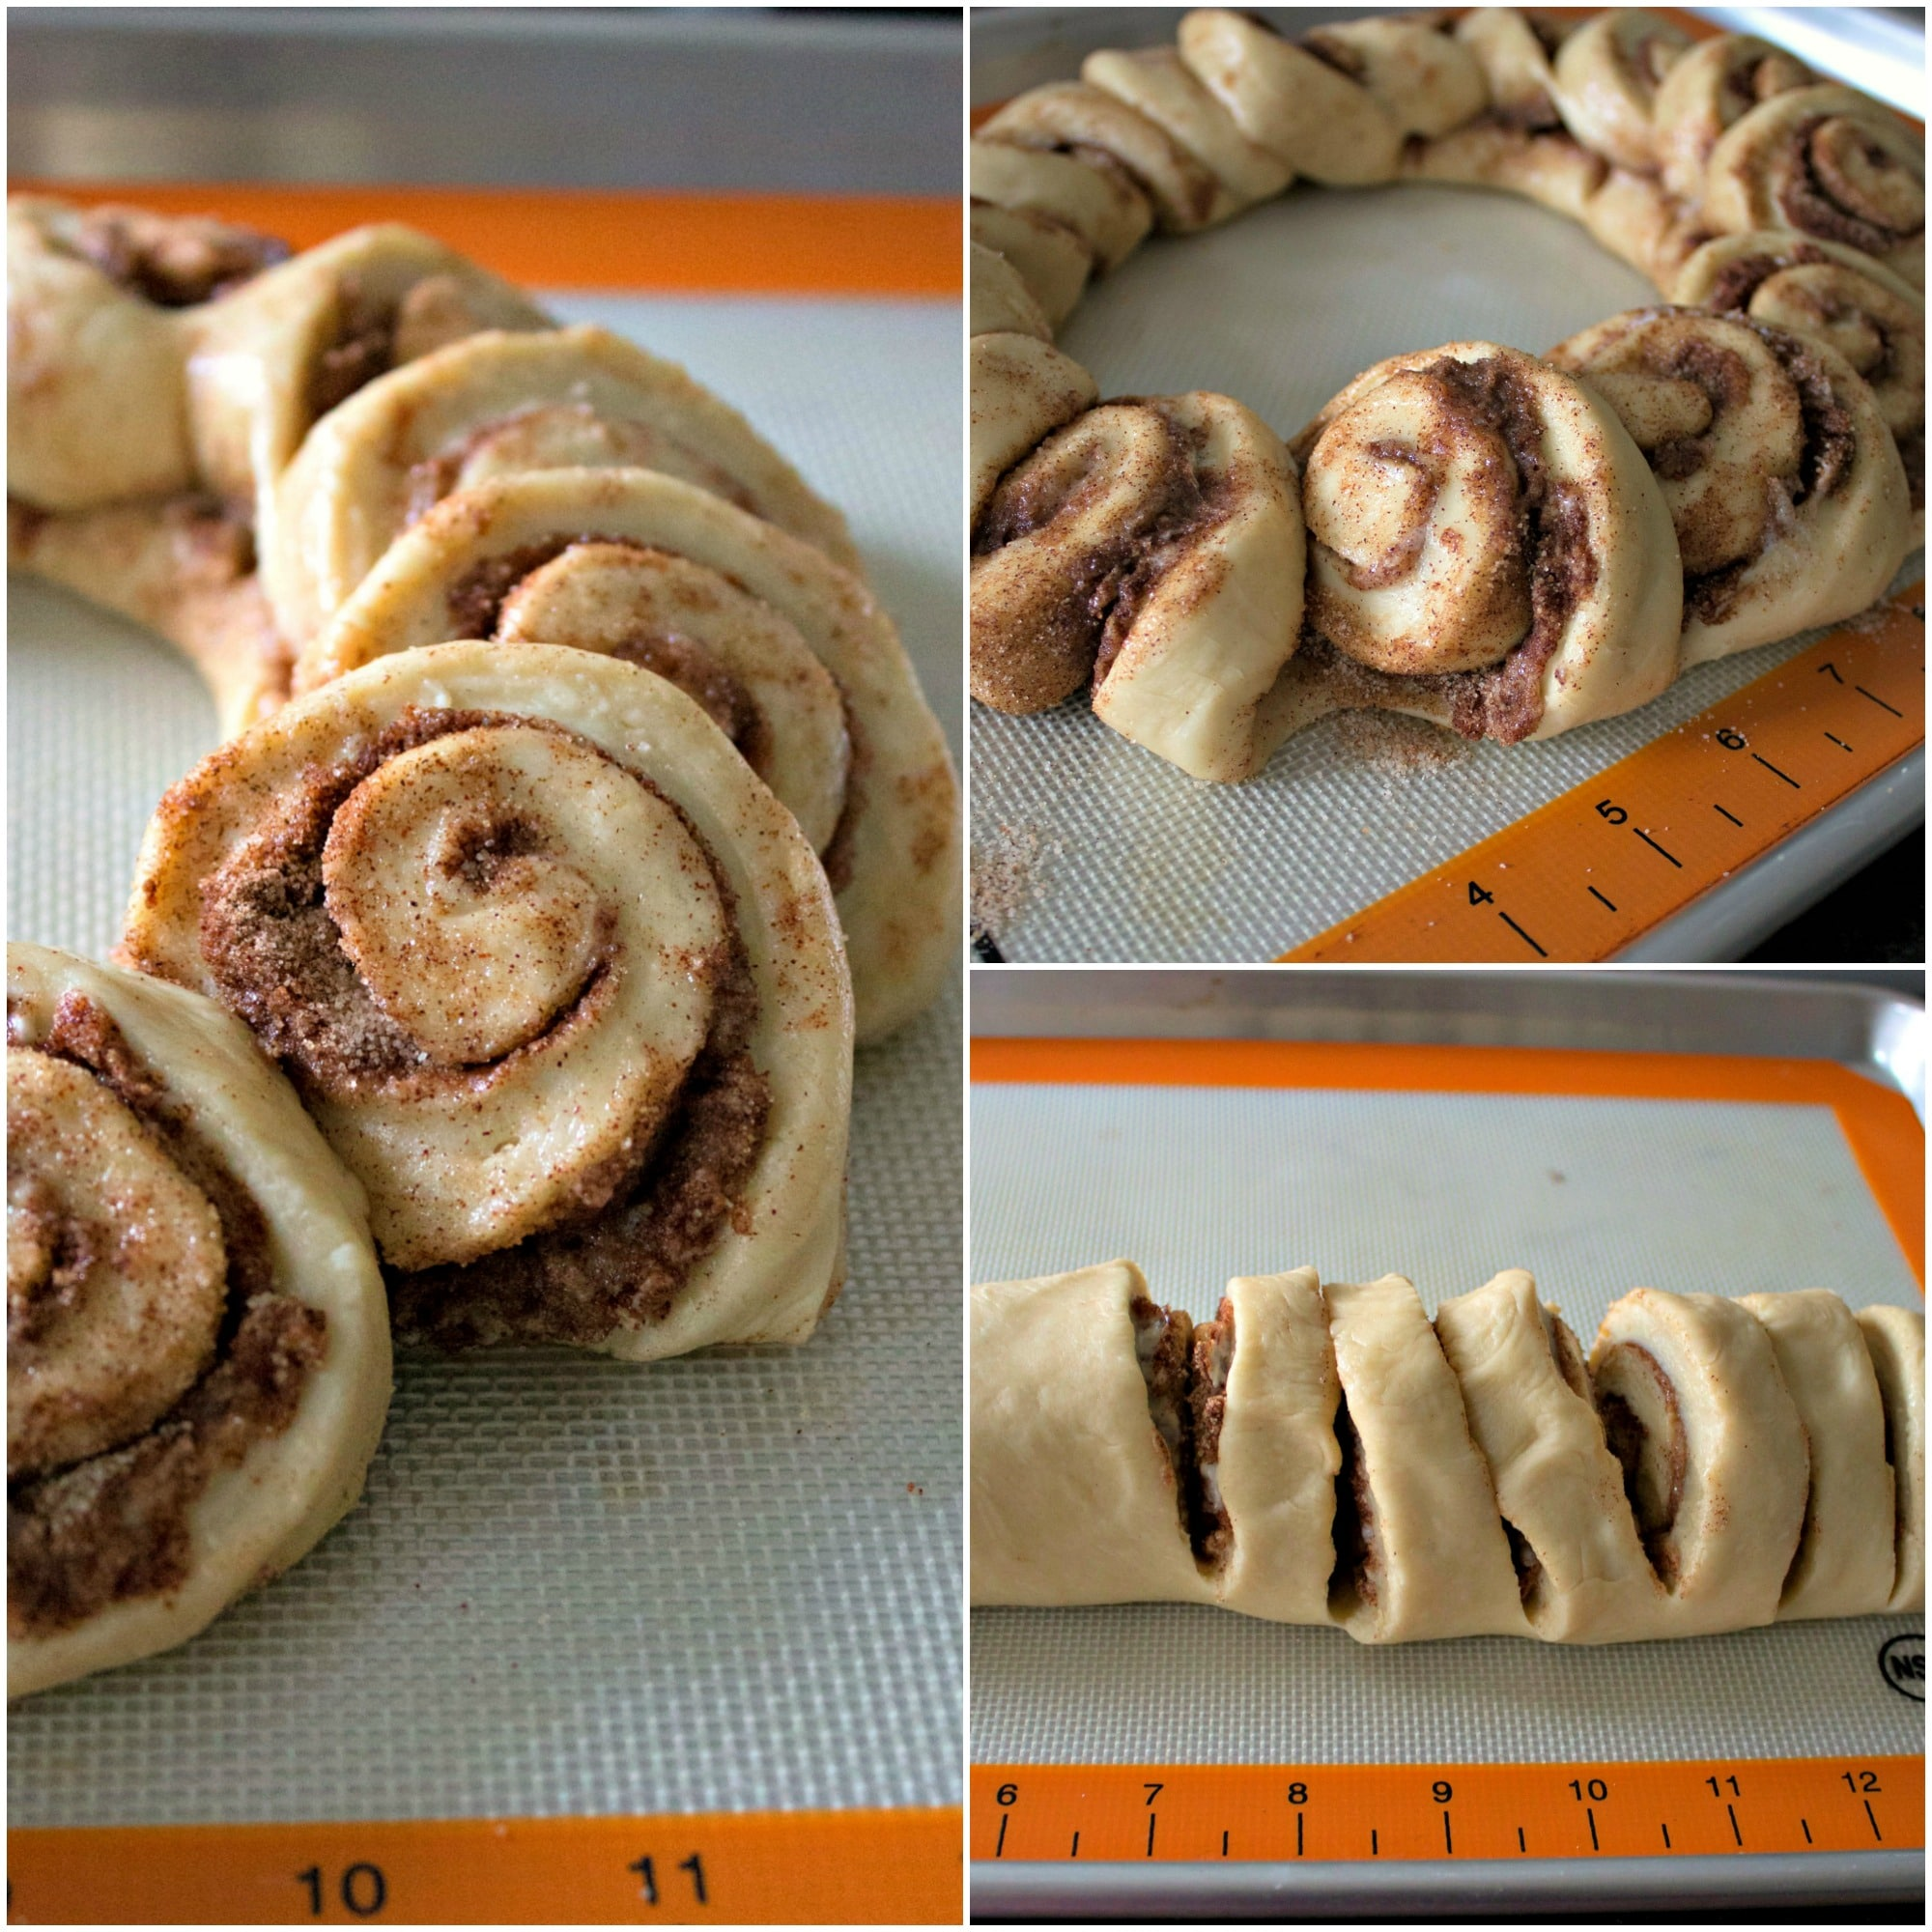 Slicing the cinnamon rolls and arranging them in a wreath